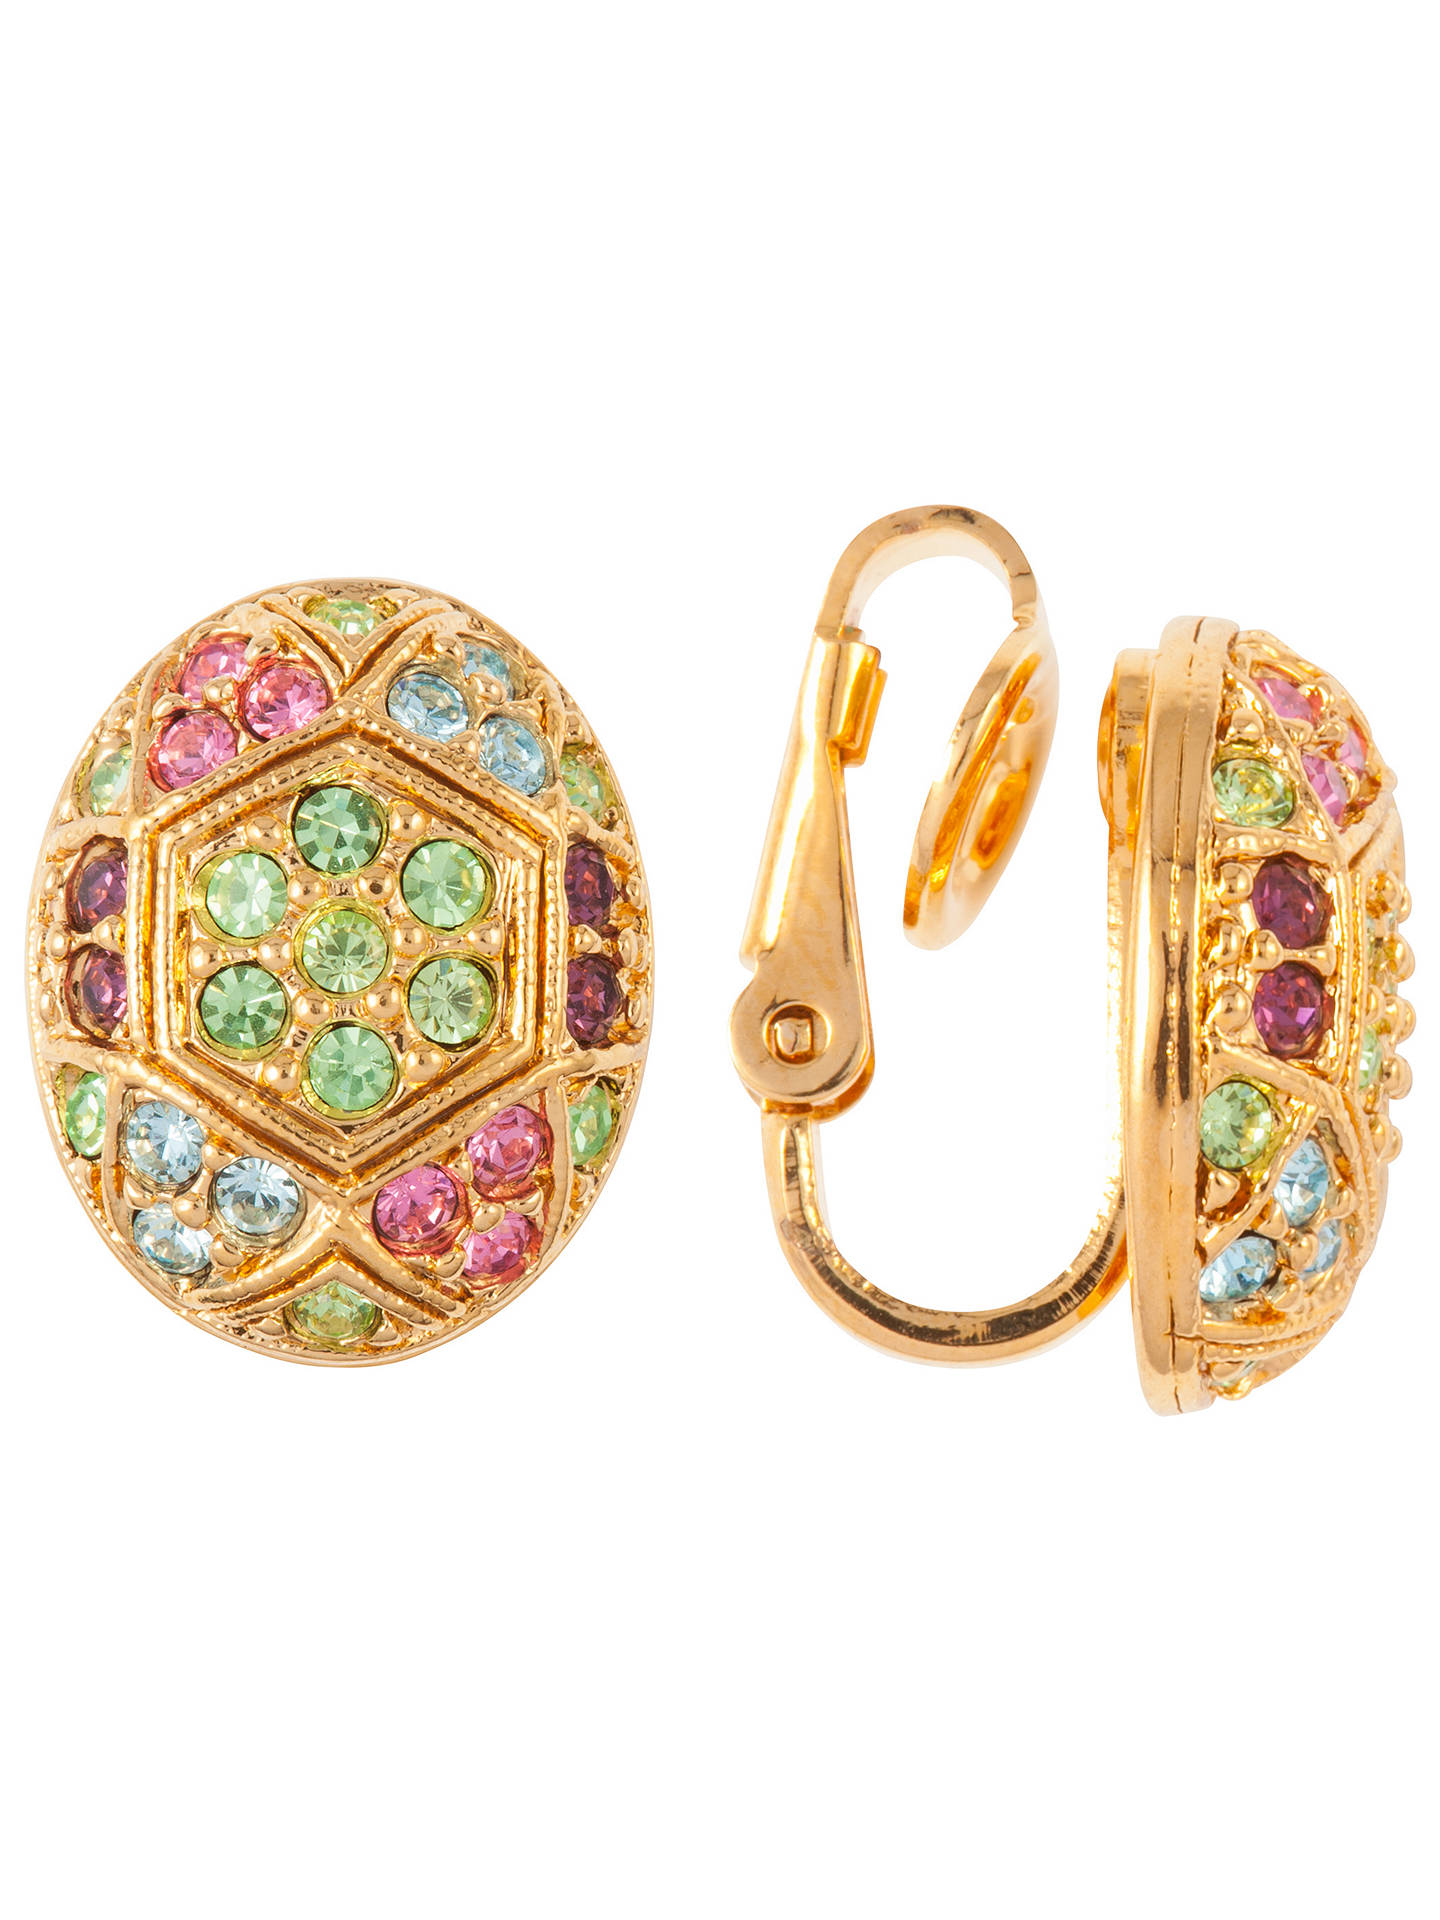 77f342d41 ... Buy Susan Caplan Vintage D'Orlan 22ct Gold Plated Swarovski Crystal  Oval Clip-On